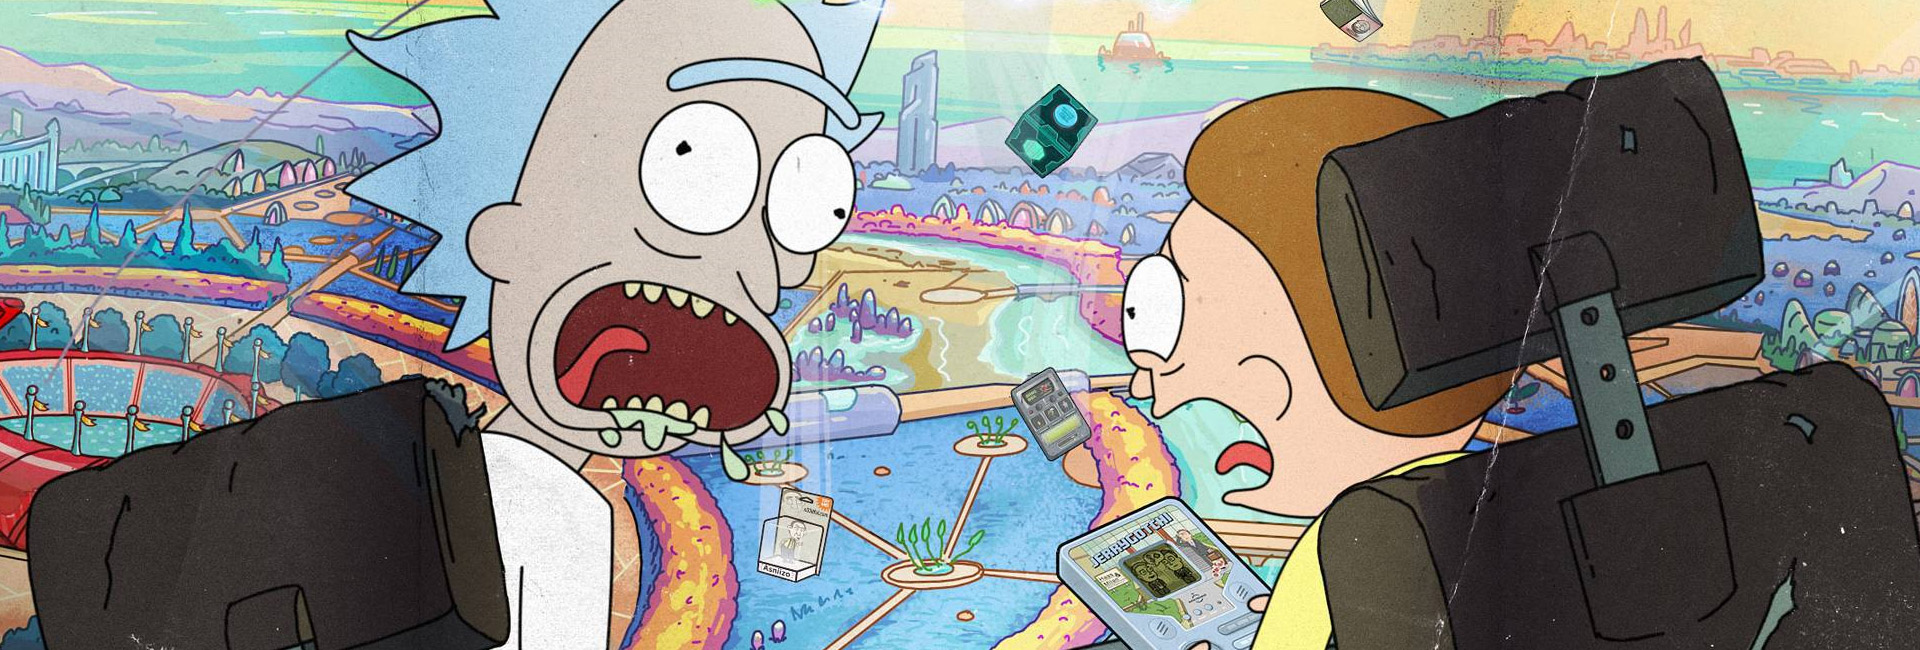 Adult Swim's Rick And Morty Rickstaverse Game Creates New Dimension on Instagram